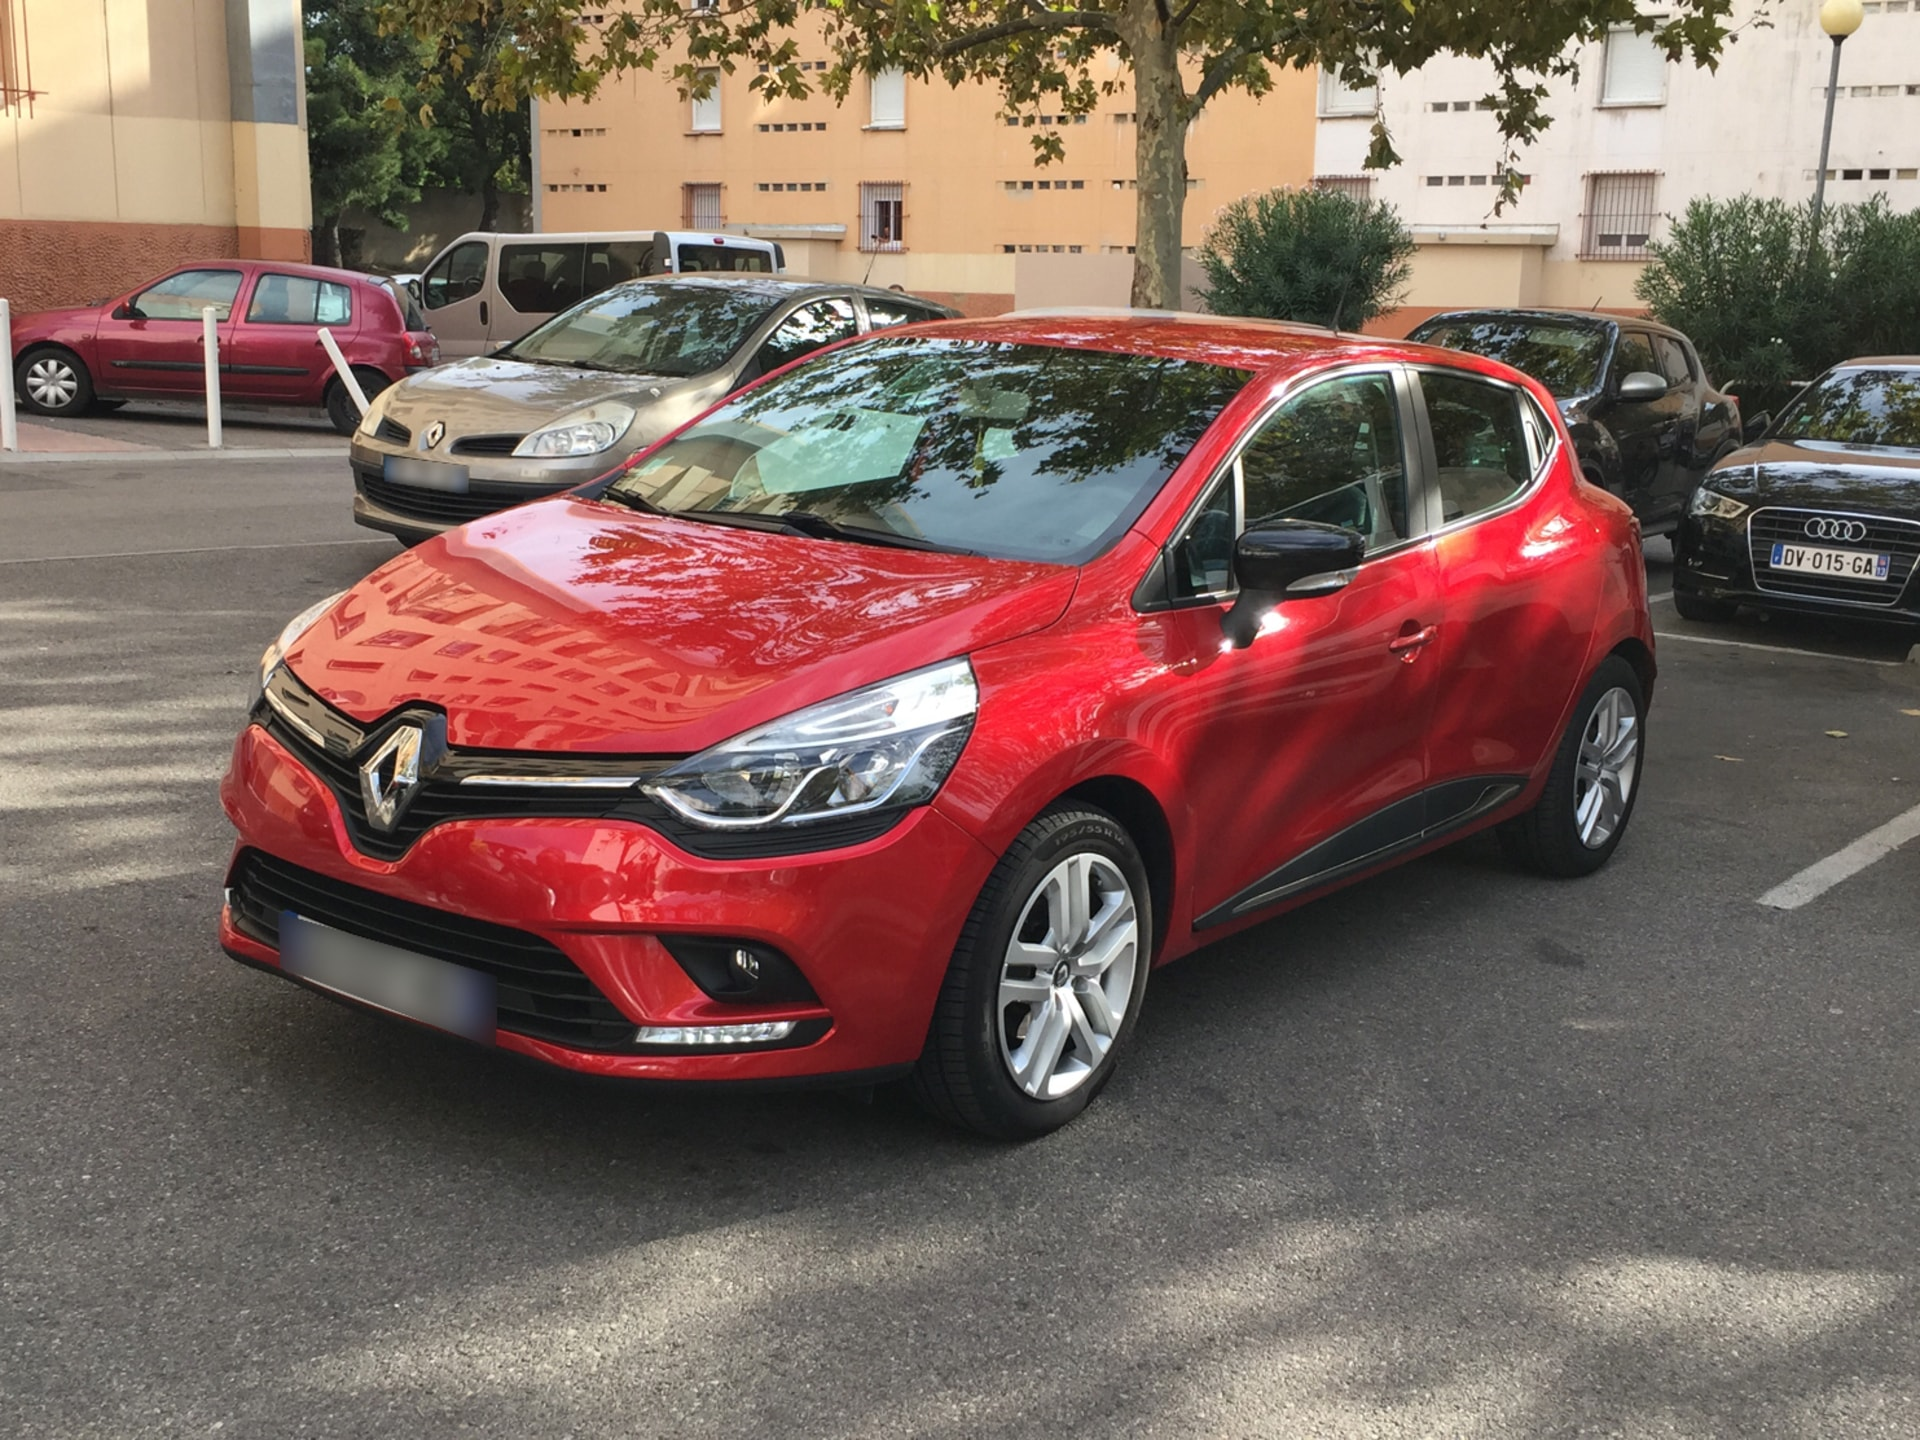 RENAULT CLIO 1.5 DCI 90 ENERGY NOUVELLE LIMITED - Carverntura